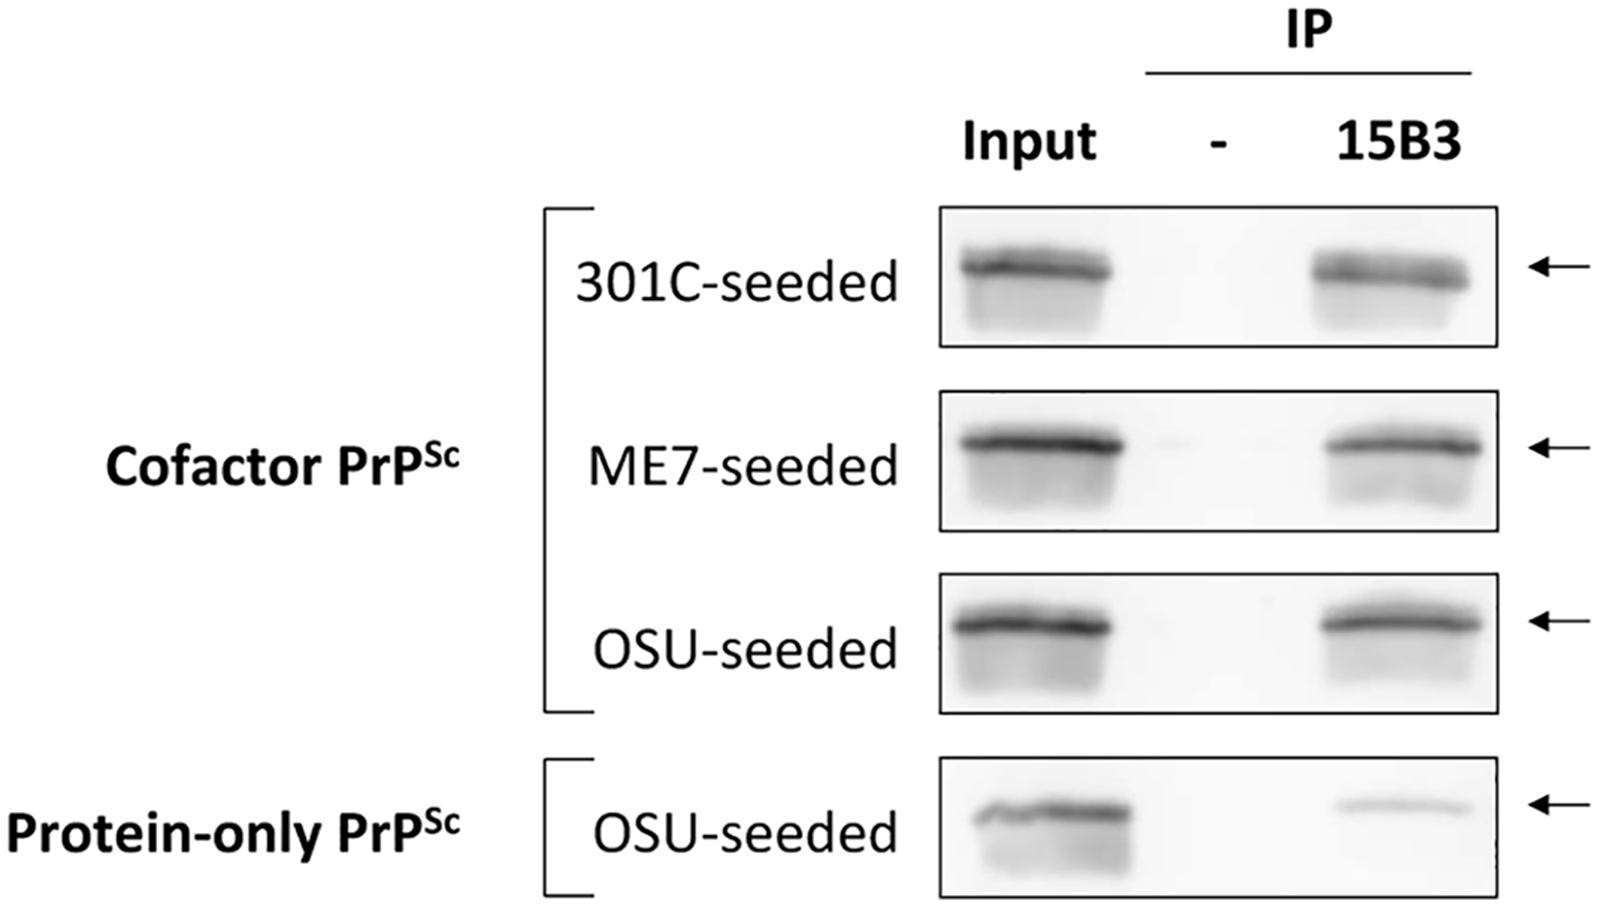 Immunoprecipitation with conformation-specific mAb 15B3 distinguishes between cofactor and protein-only PrP<sup>Sc</sup>.